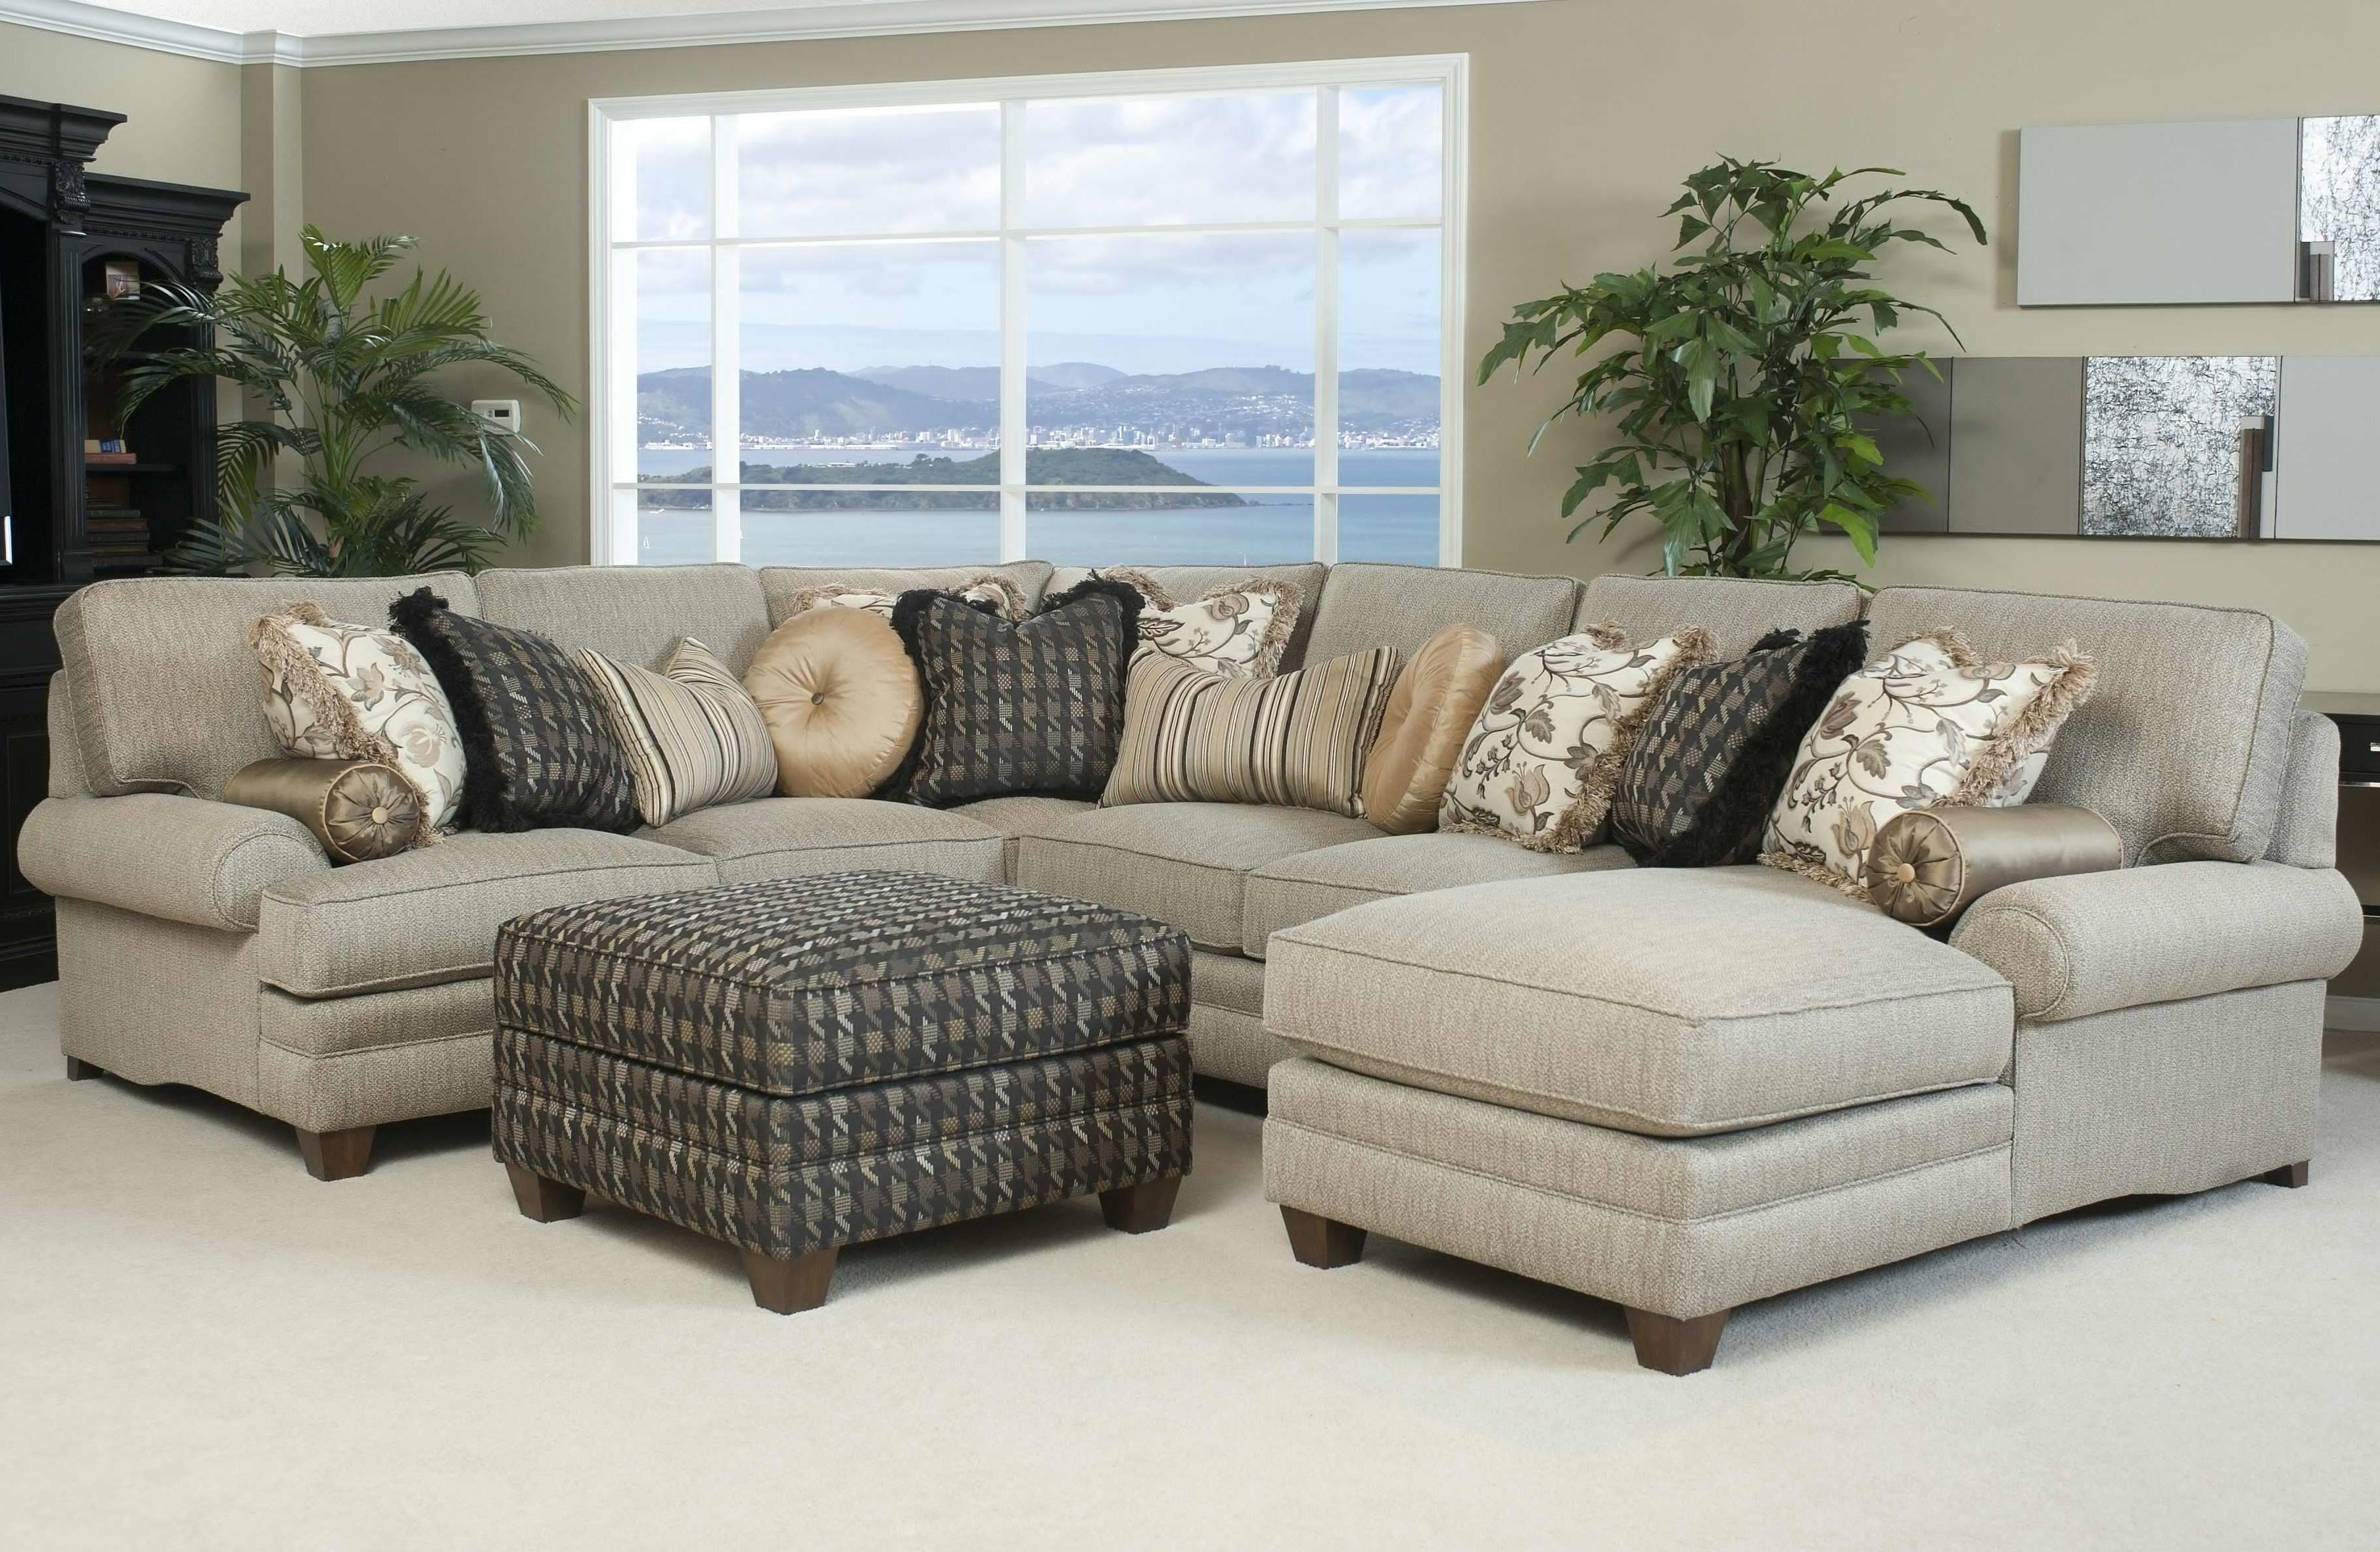 Popular Sectional Sofa Design: Comfortable Sectional Sofas Beds Small Area Throughout Sectional Sofas With Nailheads (View 7 of 20)